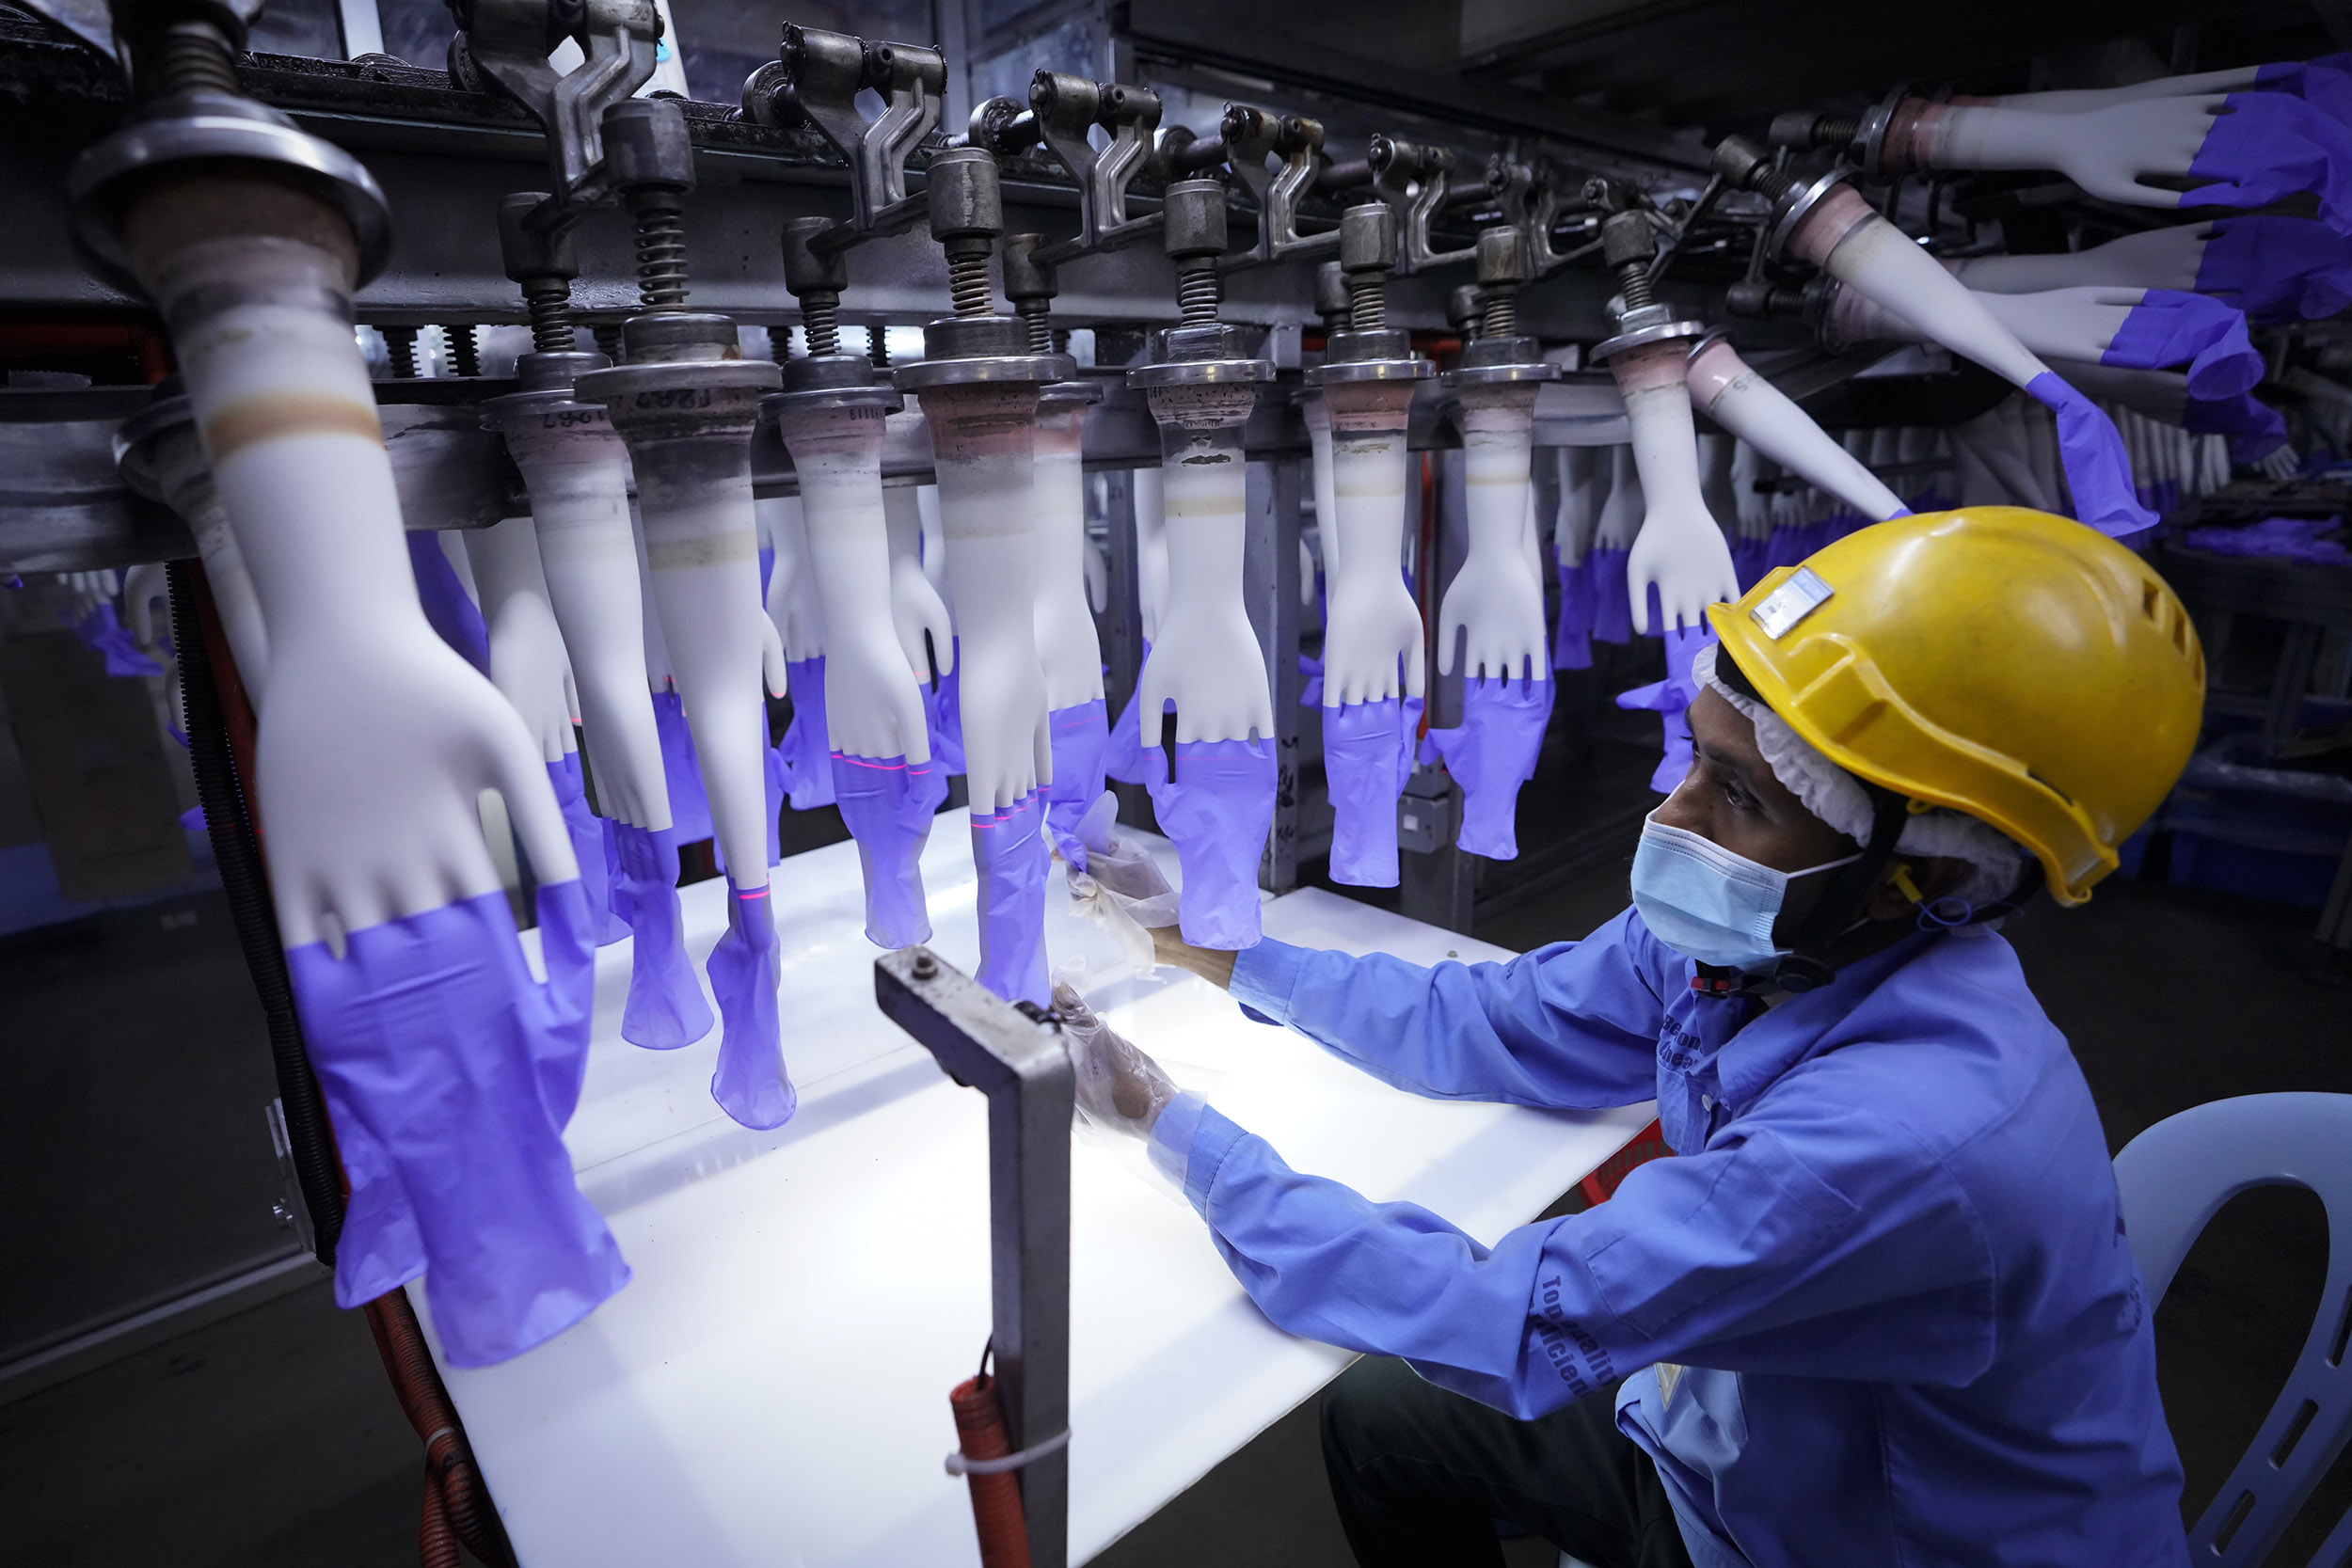 A worker inspects disposable gloves at the Top Glove factory in Shah Alam on the outskirts of Kuala Lumpur, Malaysia, on Wednesday, August 26.